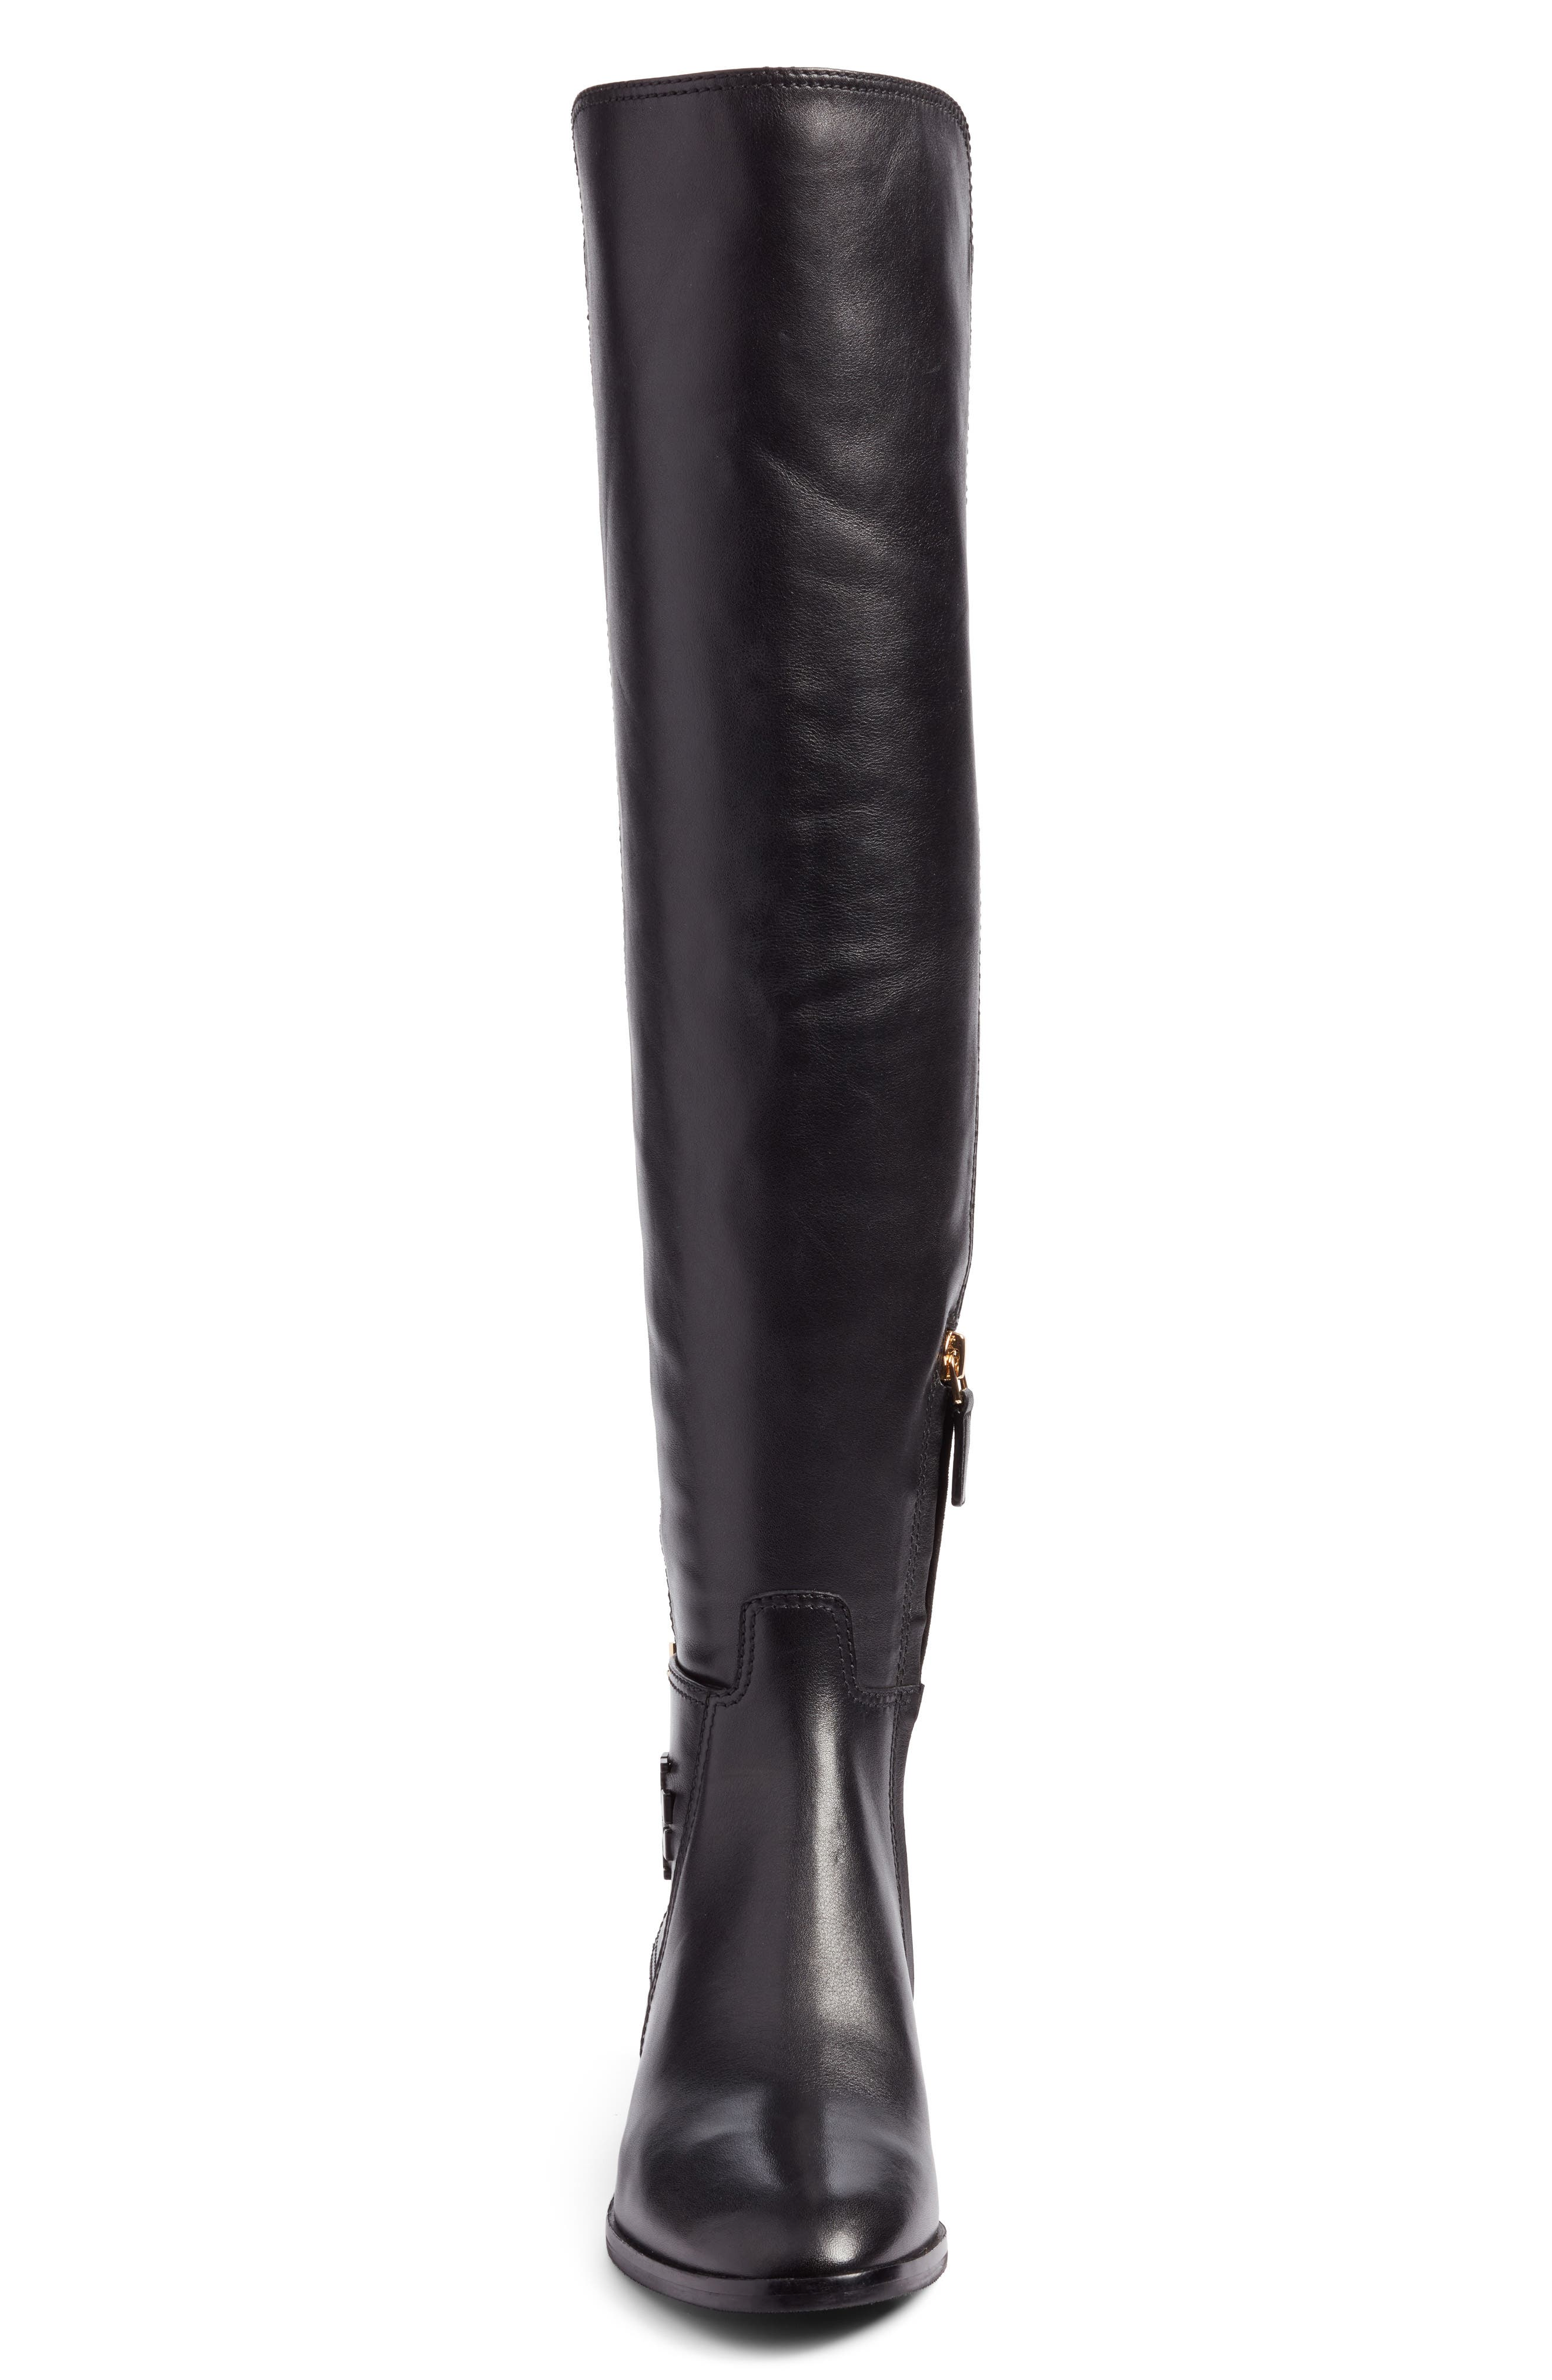 TORY BURCH,                             Wyatt Over the Knee Boot,                             Alternate thumbnail 4, color,                             001